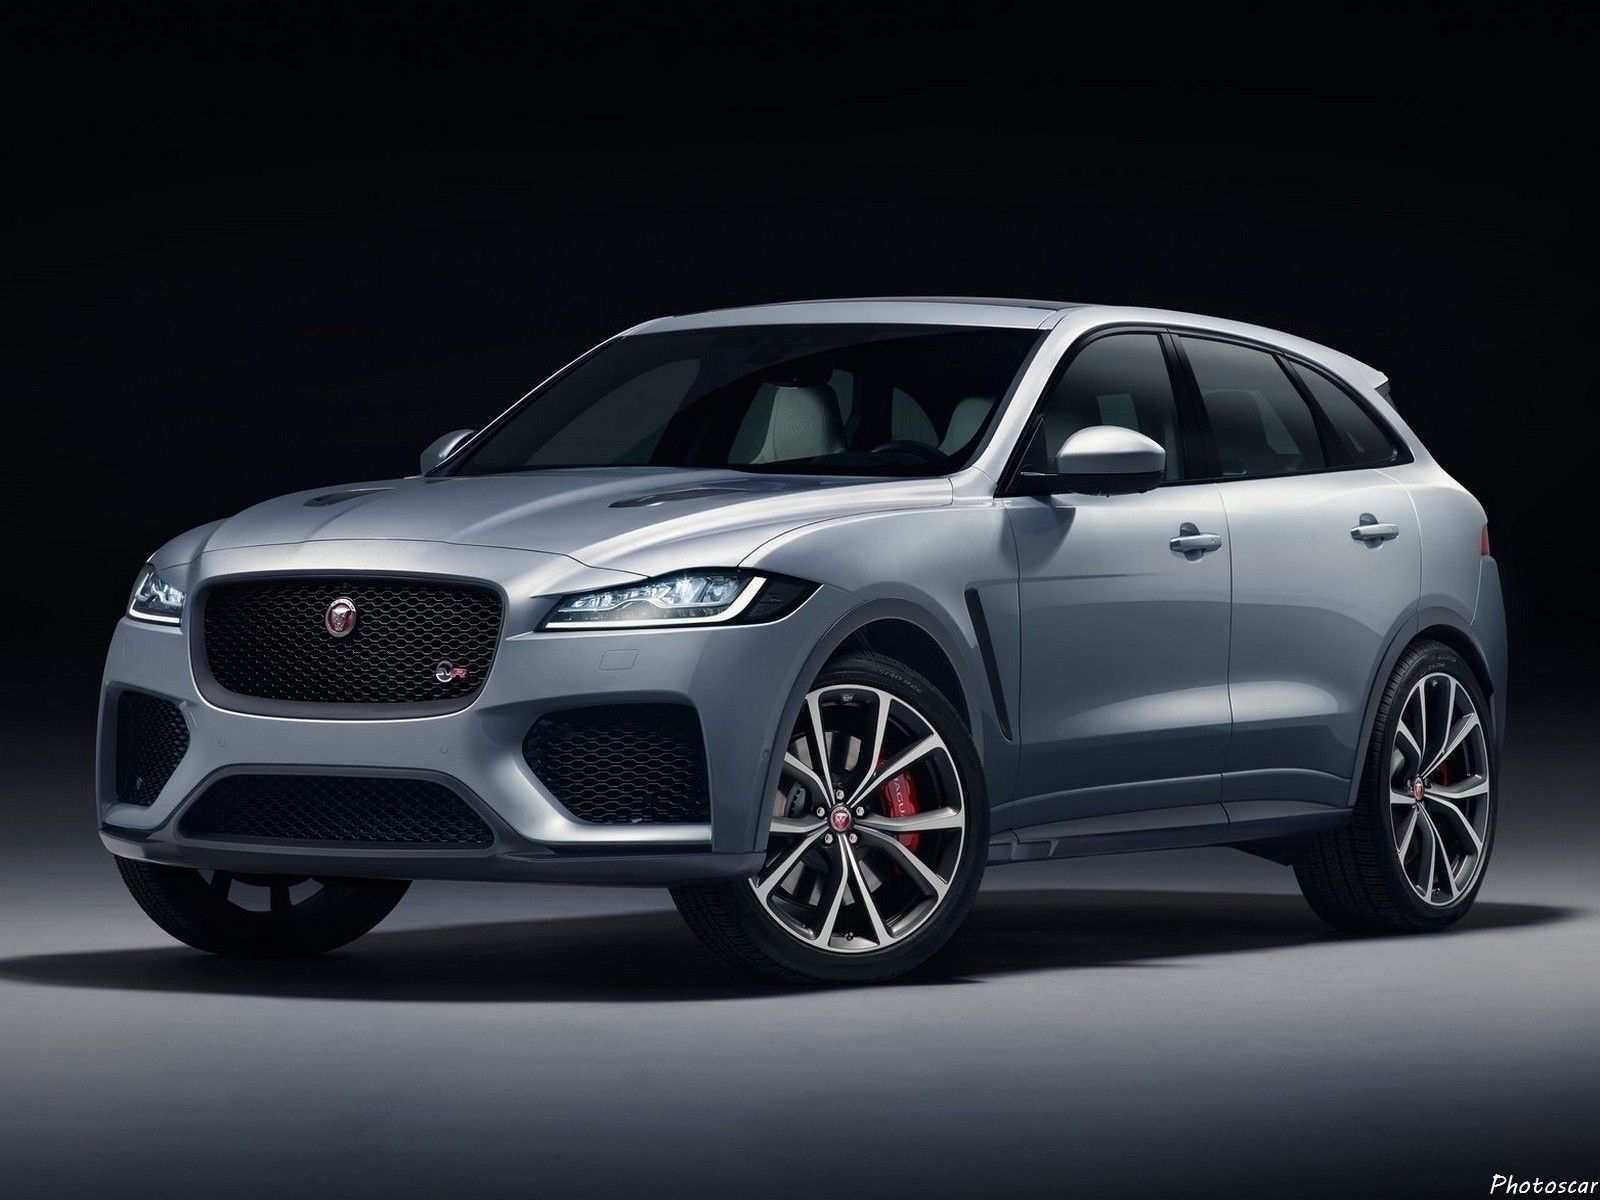 52 The Best 2019 Jaguar Xq Crossover Price